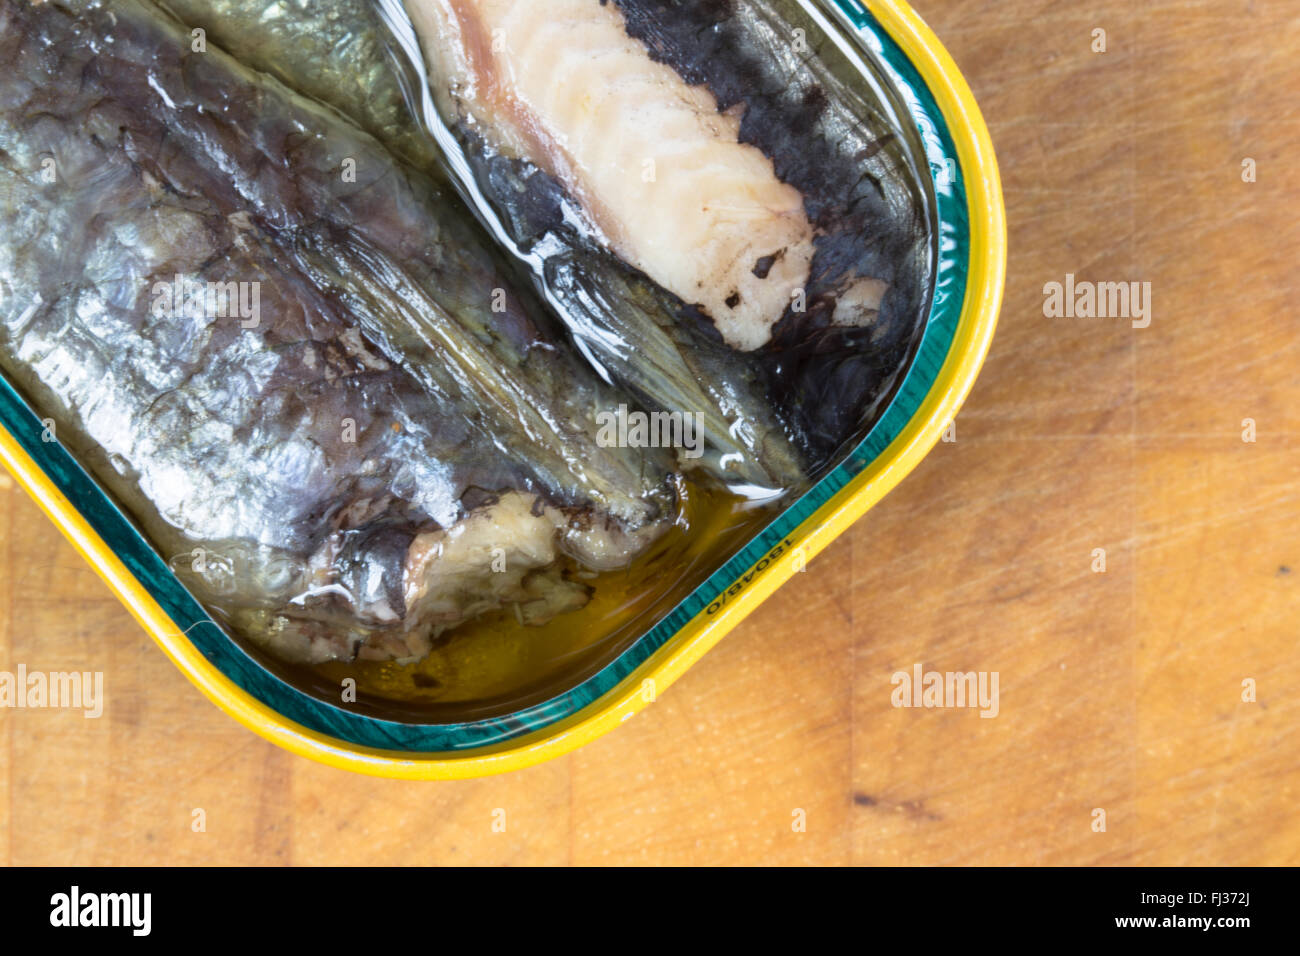 A macro image of canned, ready to eat, Moroccan Sardines in Sunflower oil presented in it's opened tin. Stock Photo